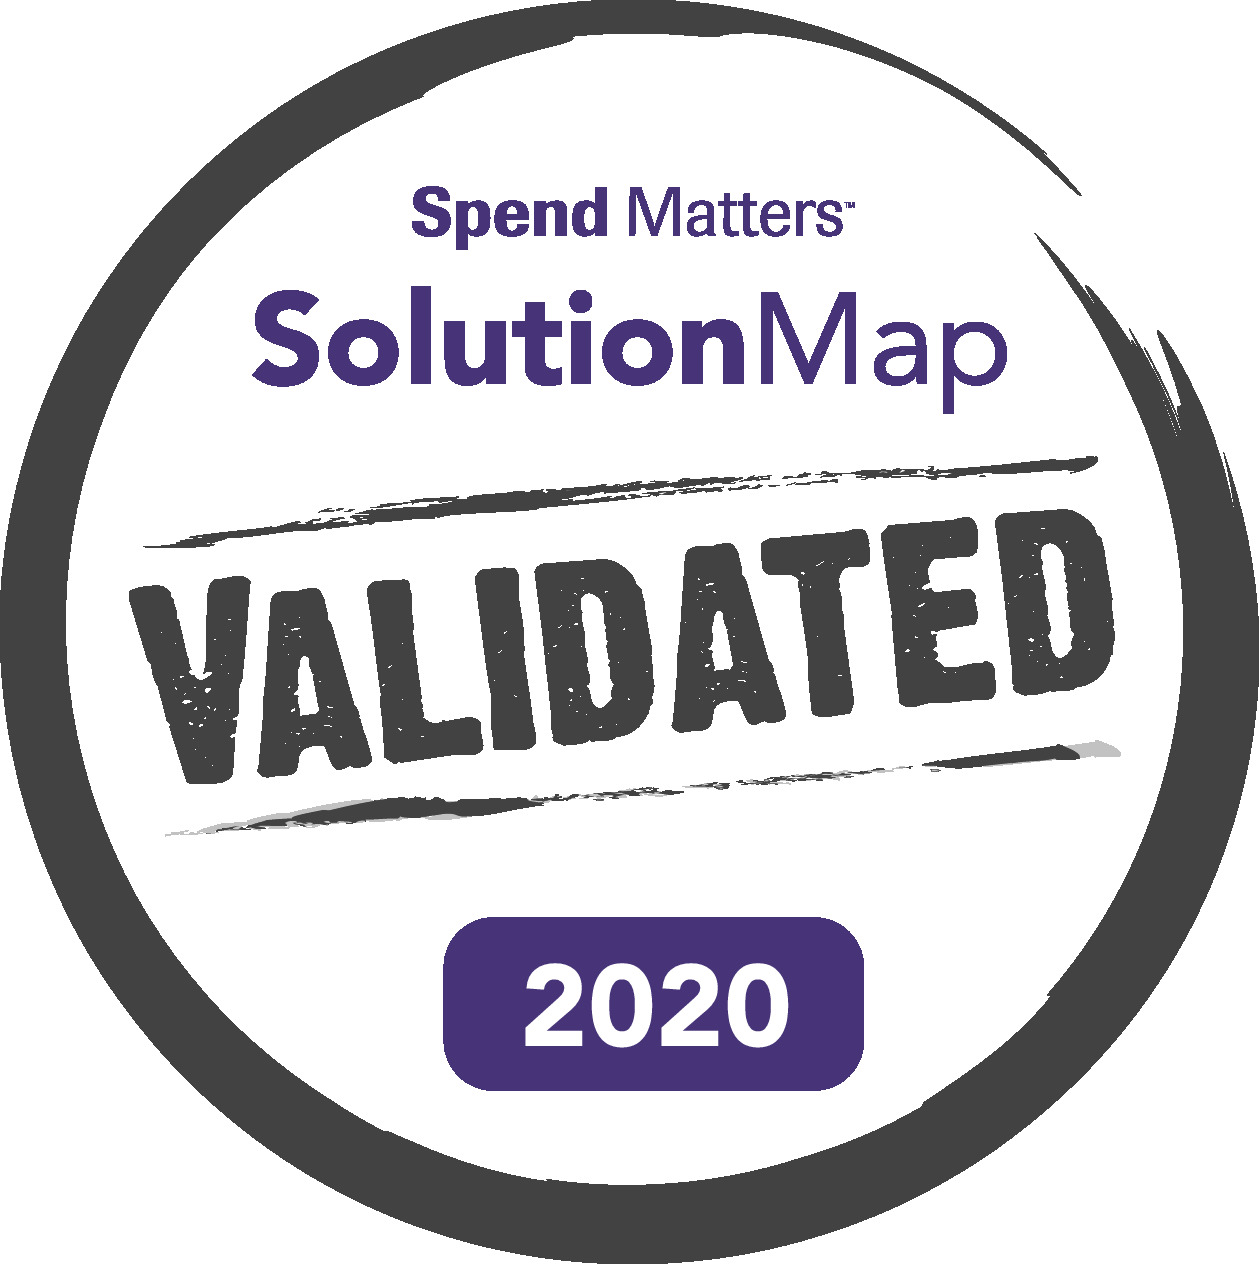 SolutionMap leader in eprocurement according to SpendMatters